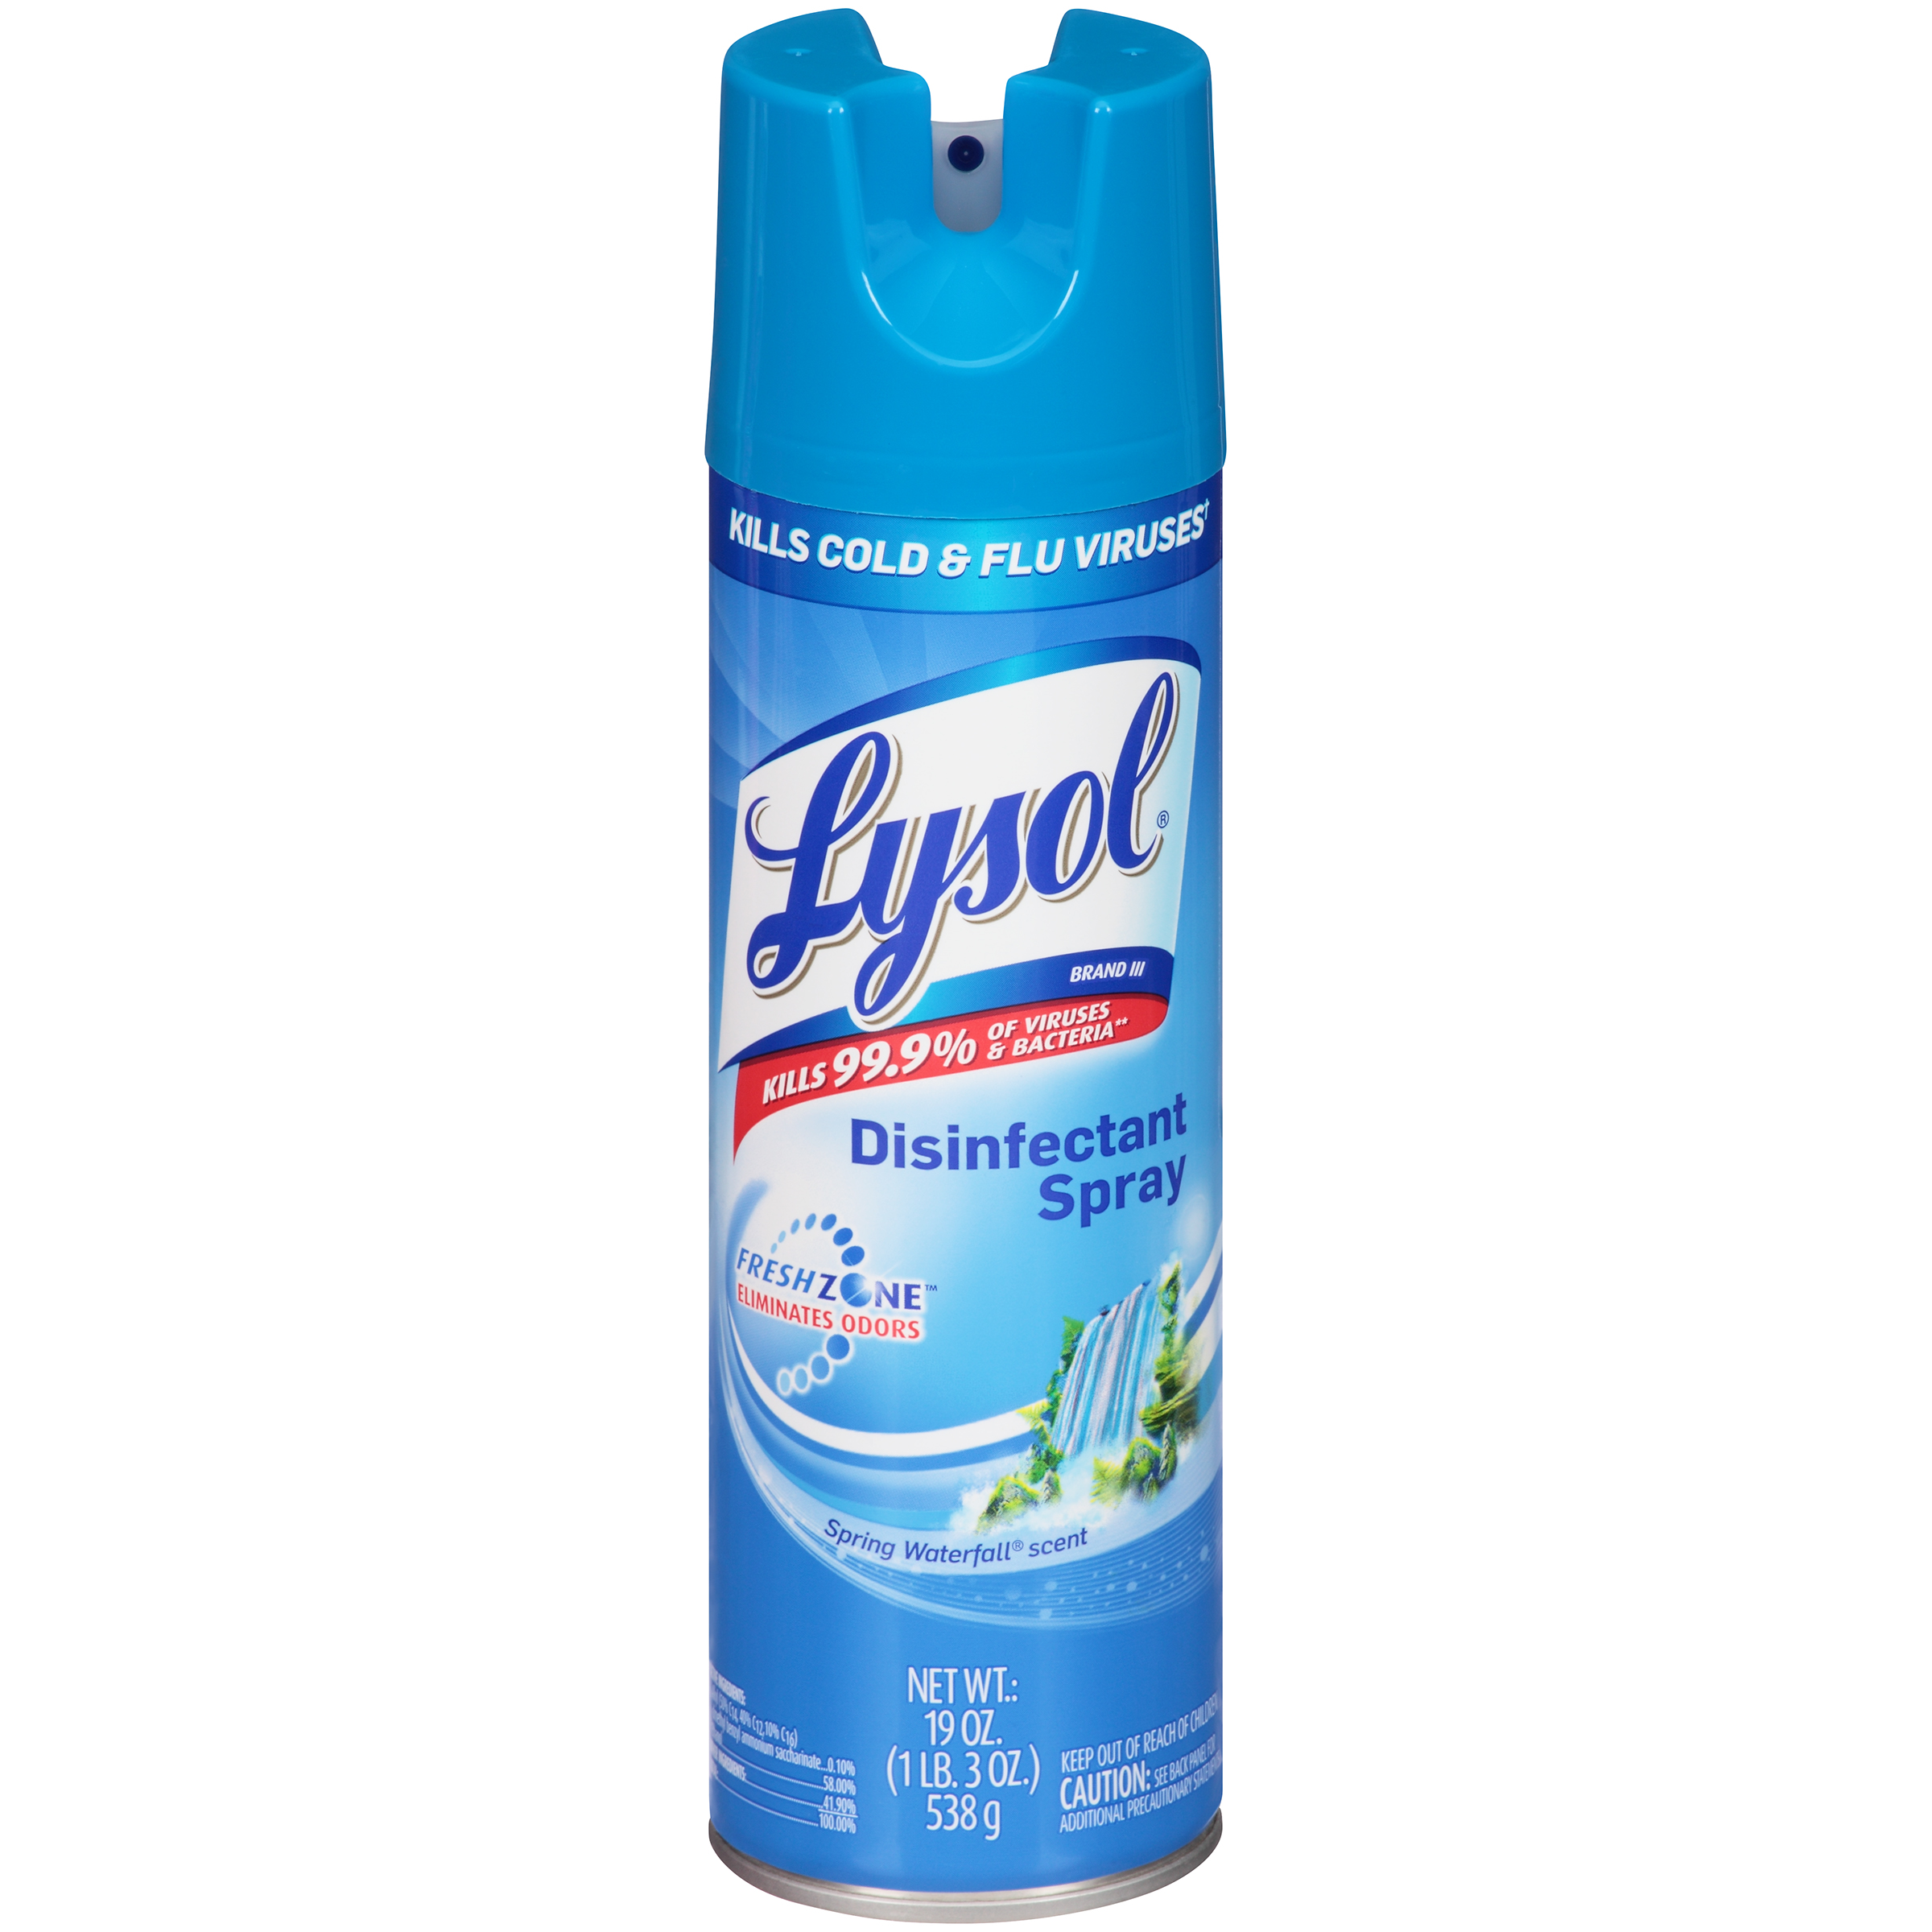 Lysol Spring Waterfall Scent Disinfectant Spray 19 OZ AEROSOL CAN PartNumber: 03282602000P KsnValue: 58860012 MfgPartNumber: 500-9326